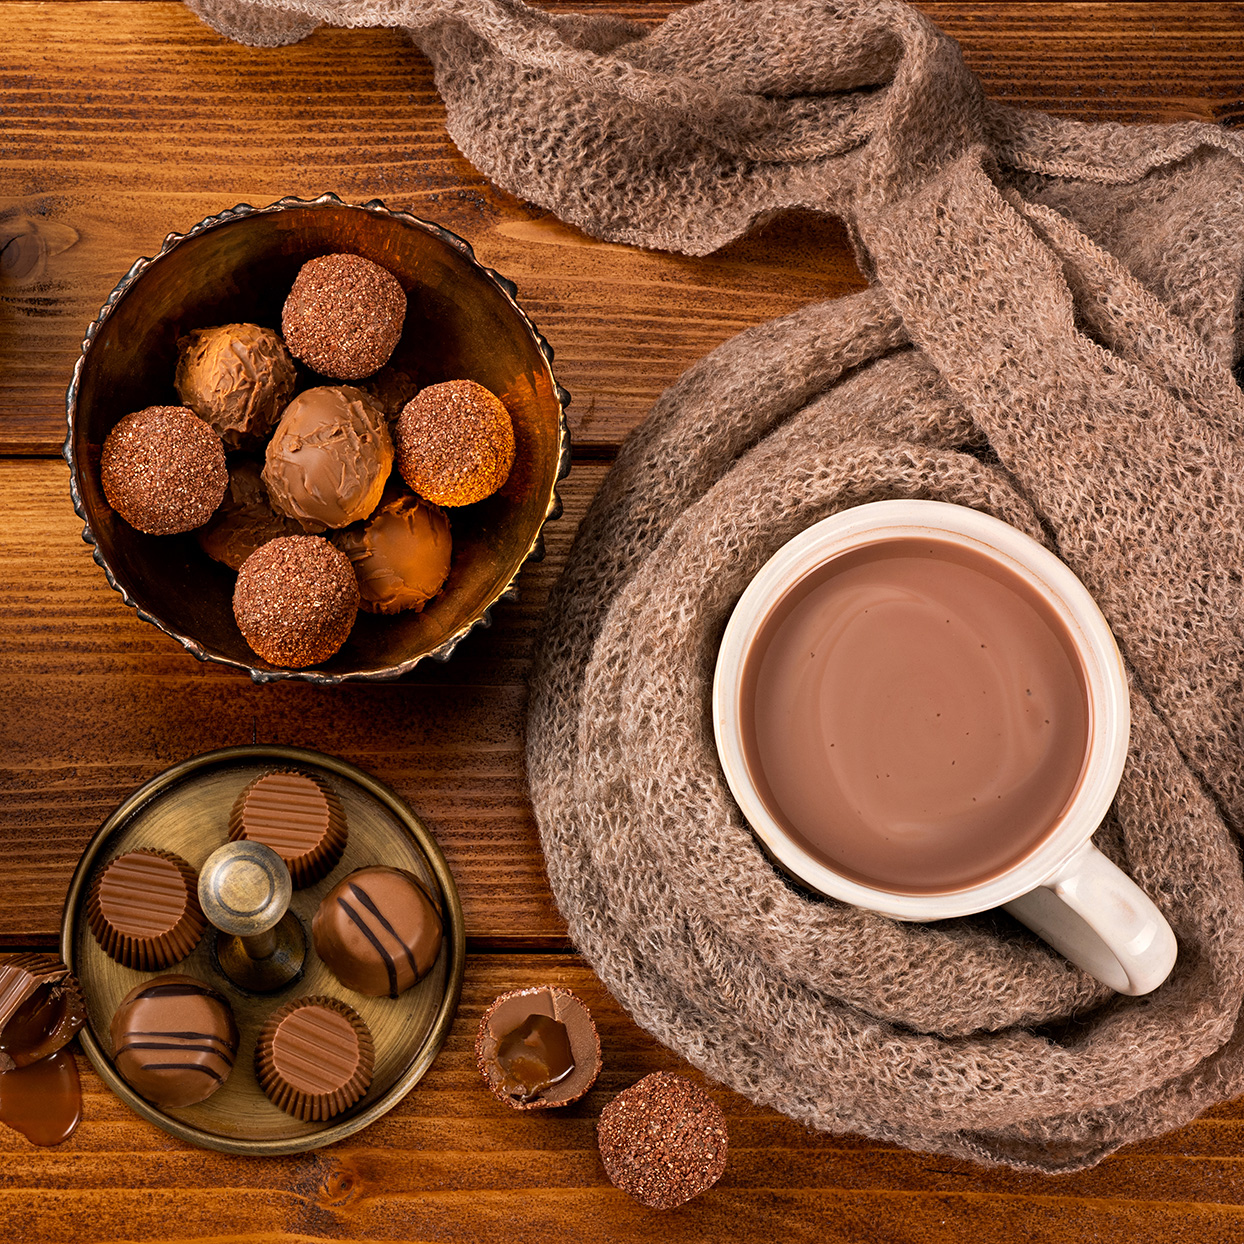 A mug of hot chocolate wrapped in a scarf and a plate of truffles